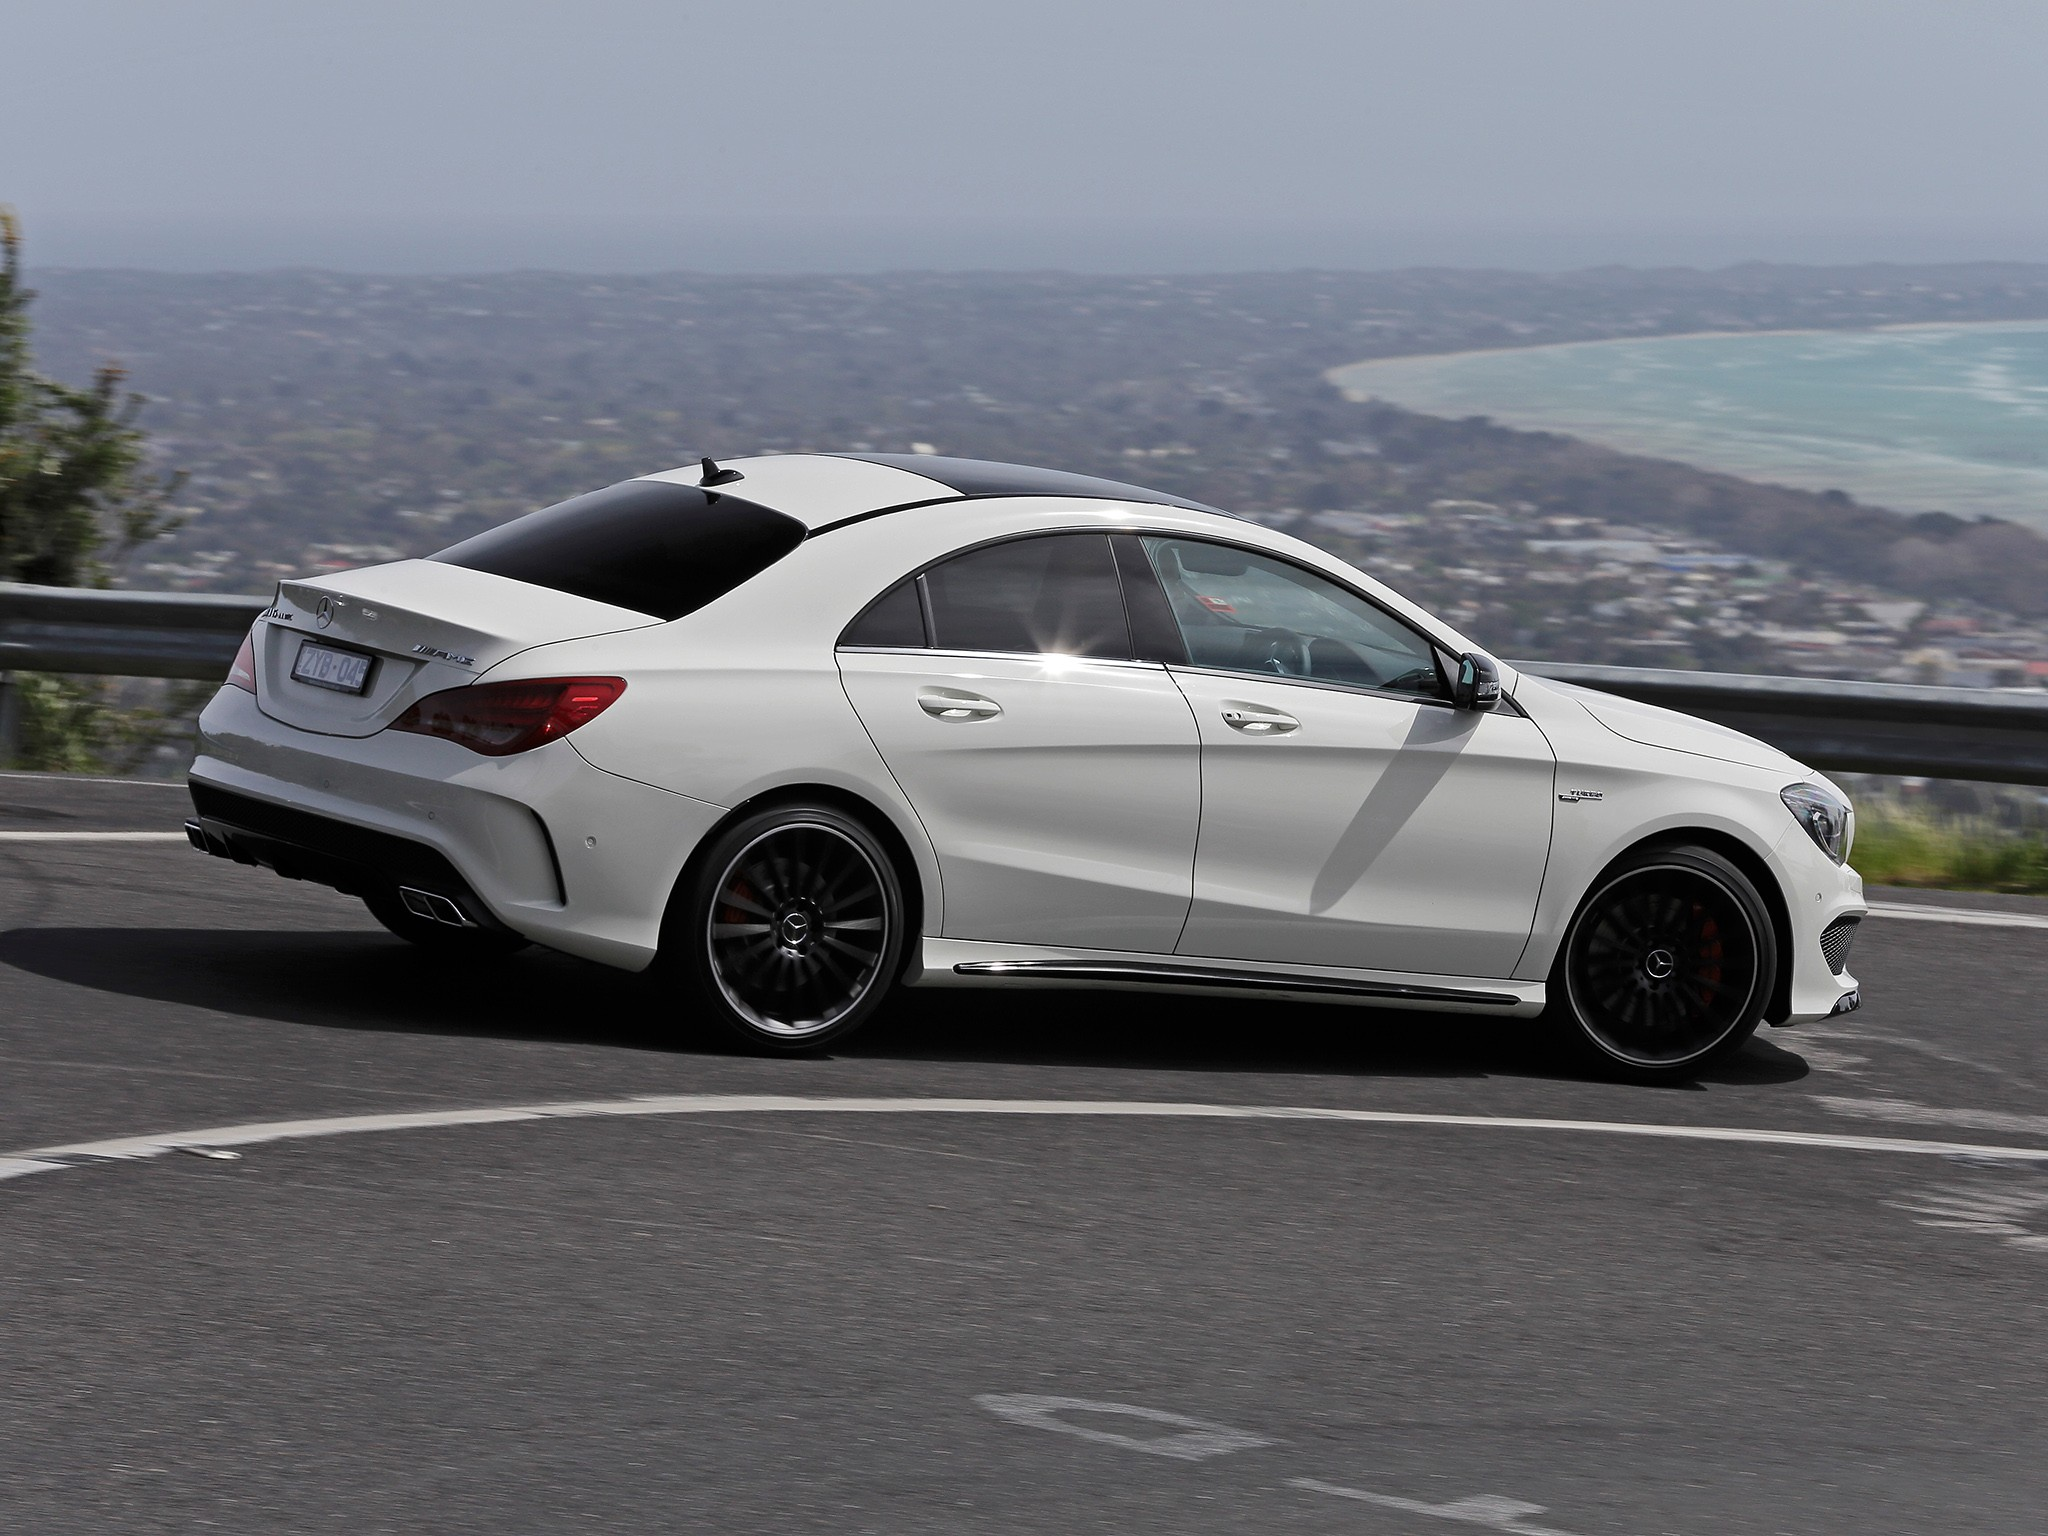 mercedes benz cla 45 amg c117 specs 2013 2014 2015 2016 2017 2018 autoevolution. Black Bedroom Furniture Sets. Home Design Ideas